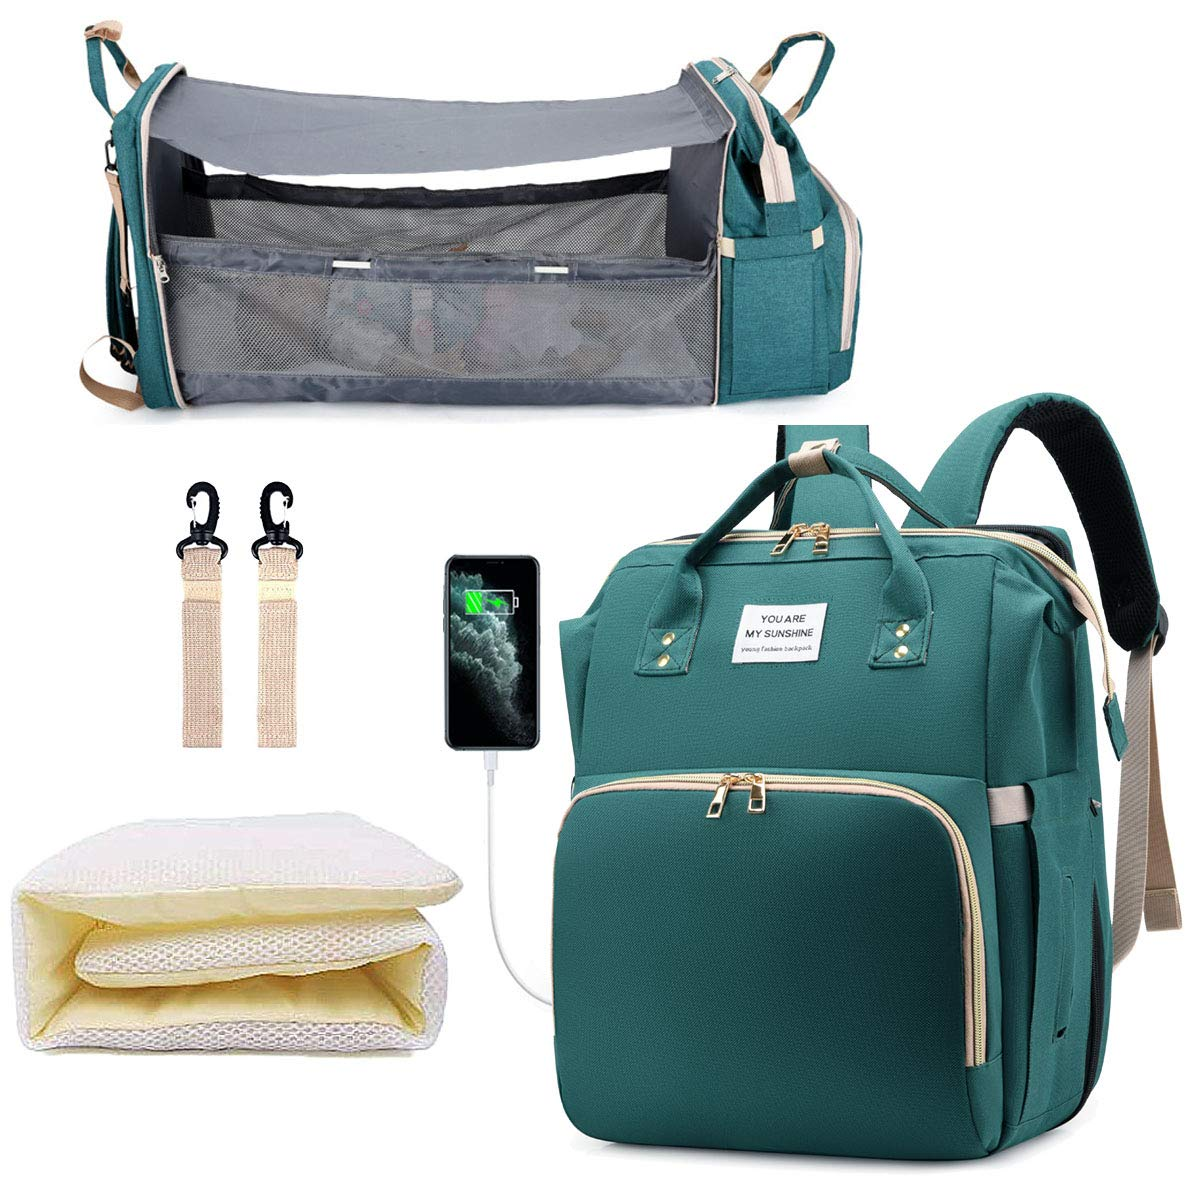 Diaper Bag Backpack, 3 in 1 Diaper Backpack Multifunction Nappy Bag Foldable Baby Bed Travel Bassinet for Baby (Bag+Crib+USB), Maternity Baby Changing Bags, Large Capacity Stylish, Green